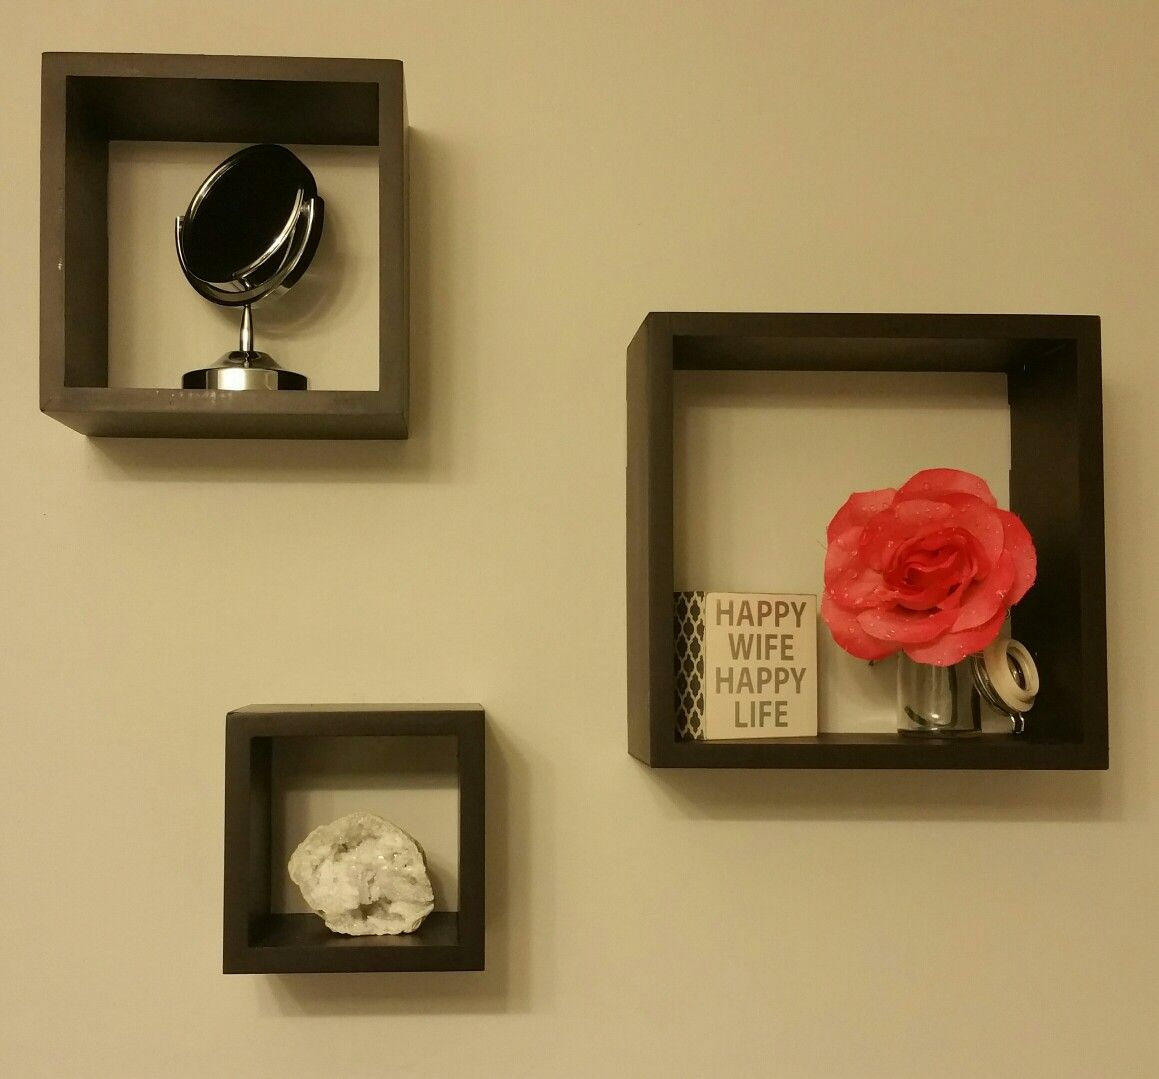 Small space decor- wall box shelves | our new house | Pinterest ...